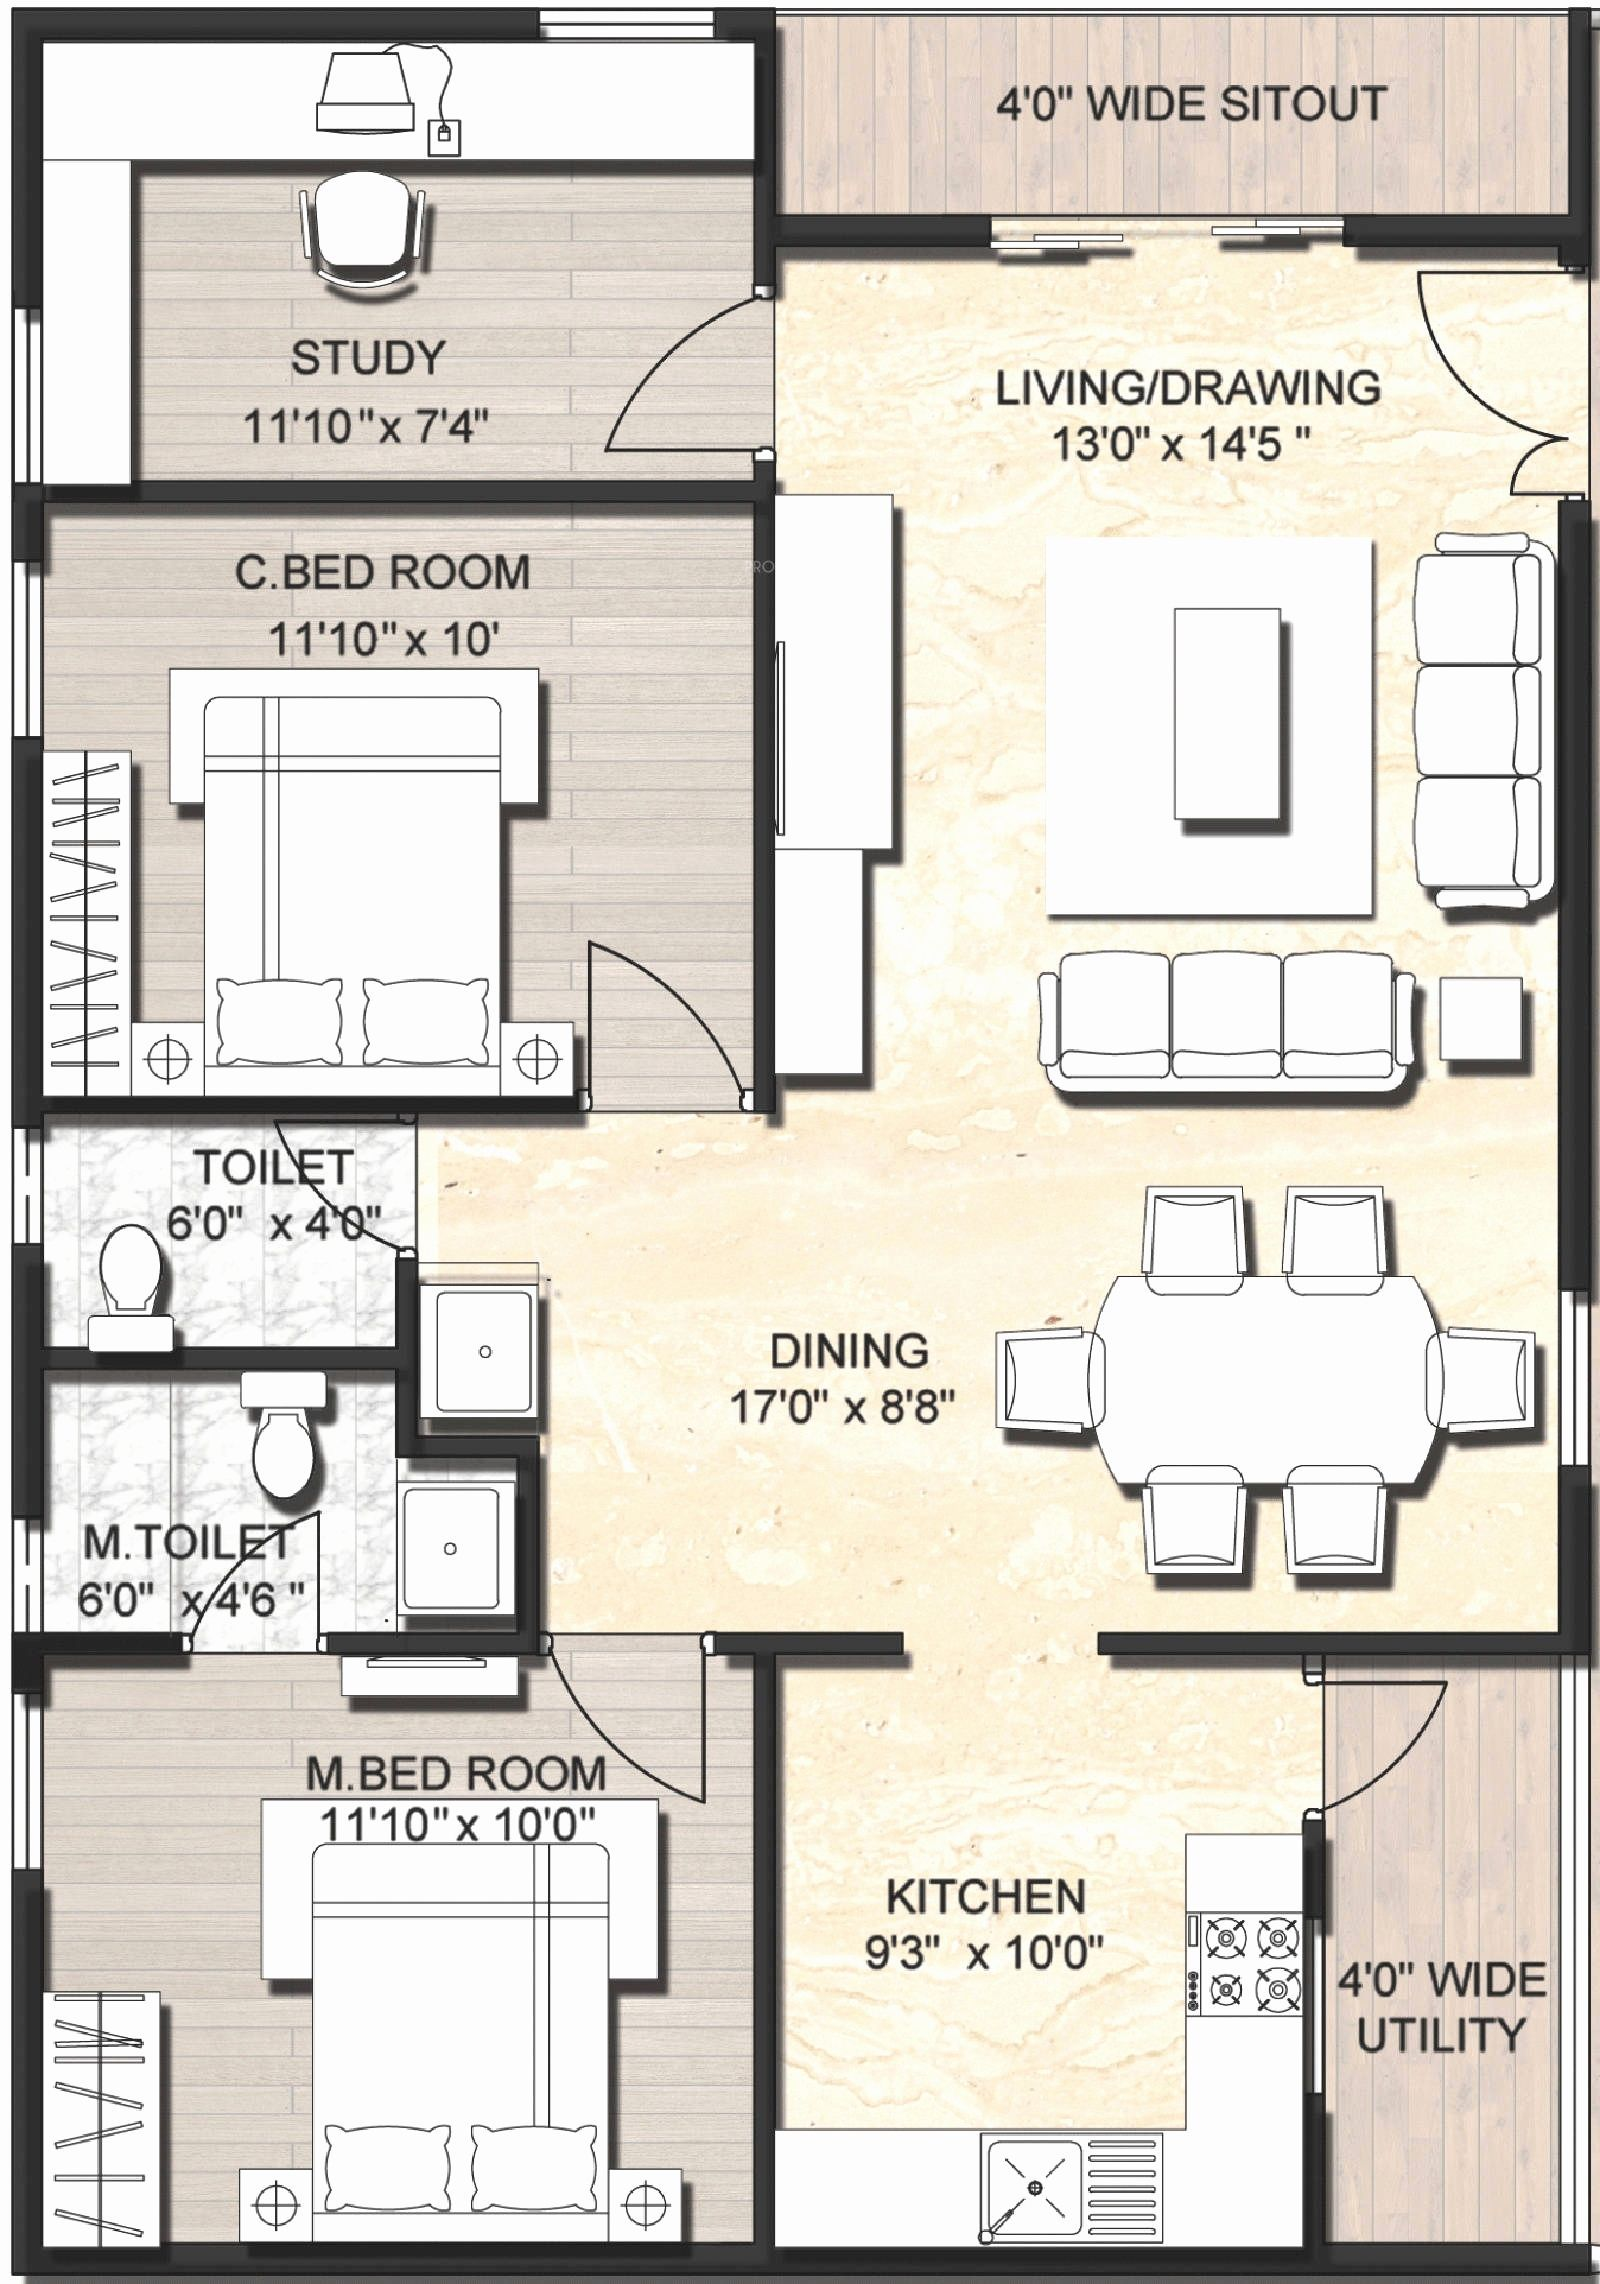 900 Sq Ft Duplex House Plans Google Search Wangi Home Duplex House Plans 2 Bedroom Indian House Plans 1200 Sq Ft House Small House Plans